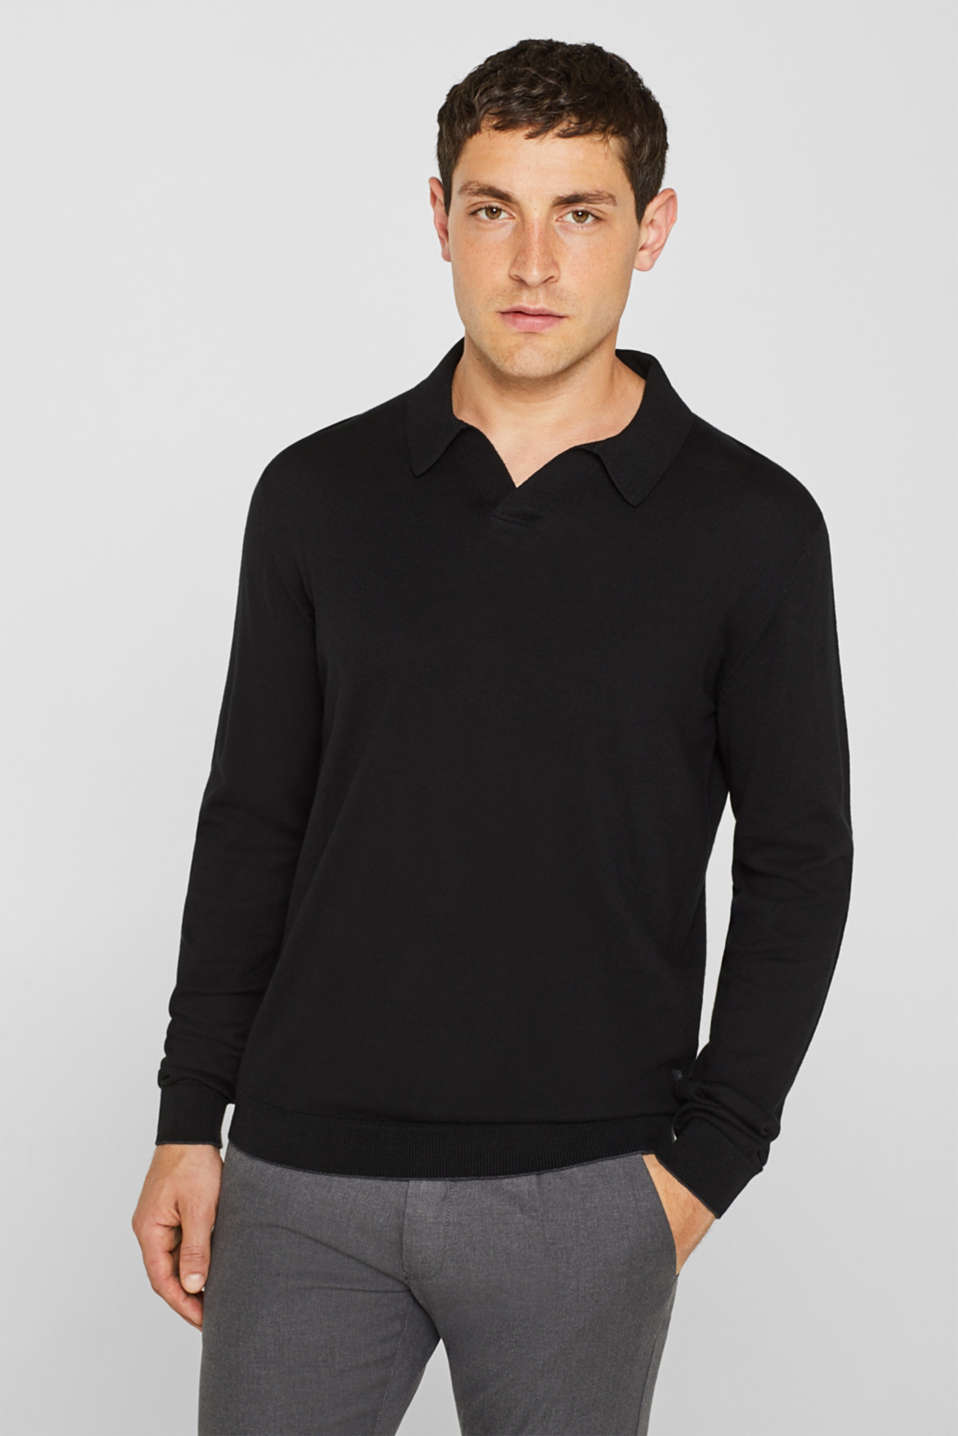 Silk blend: jumper with an open polo collar